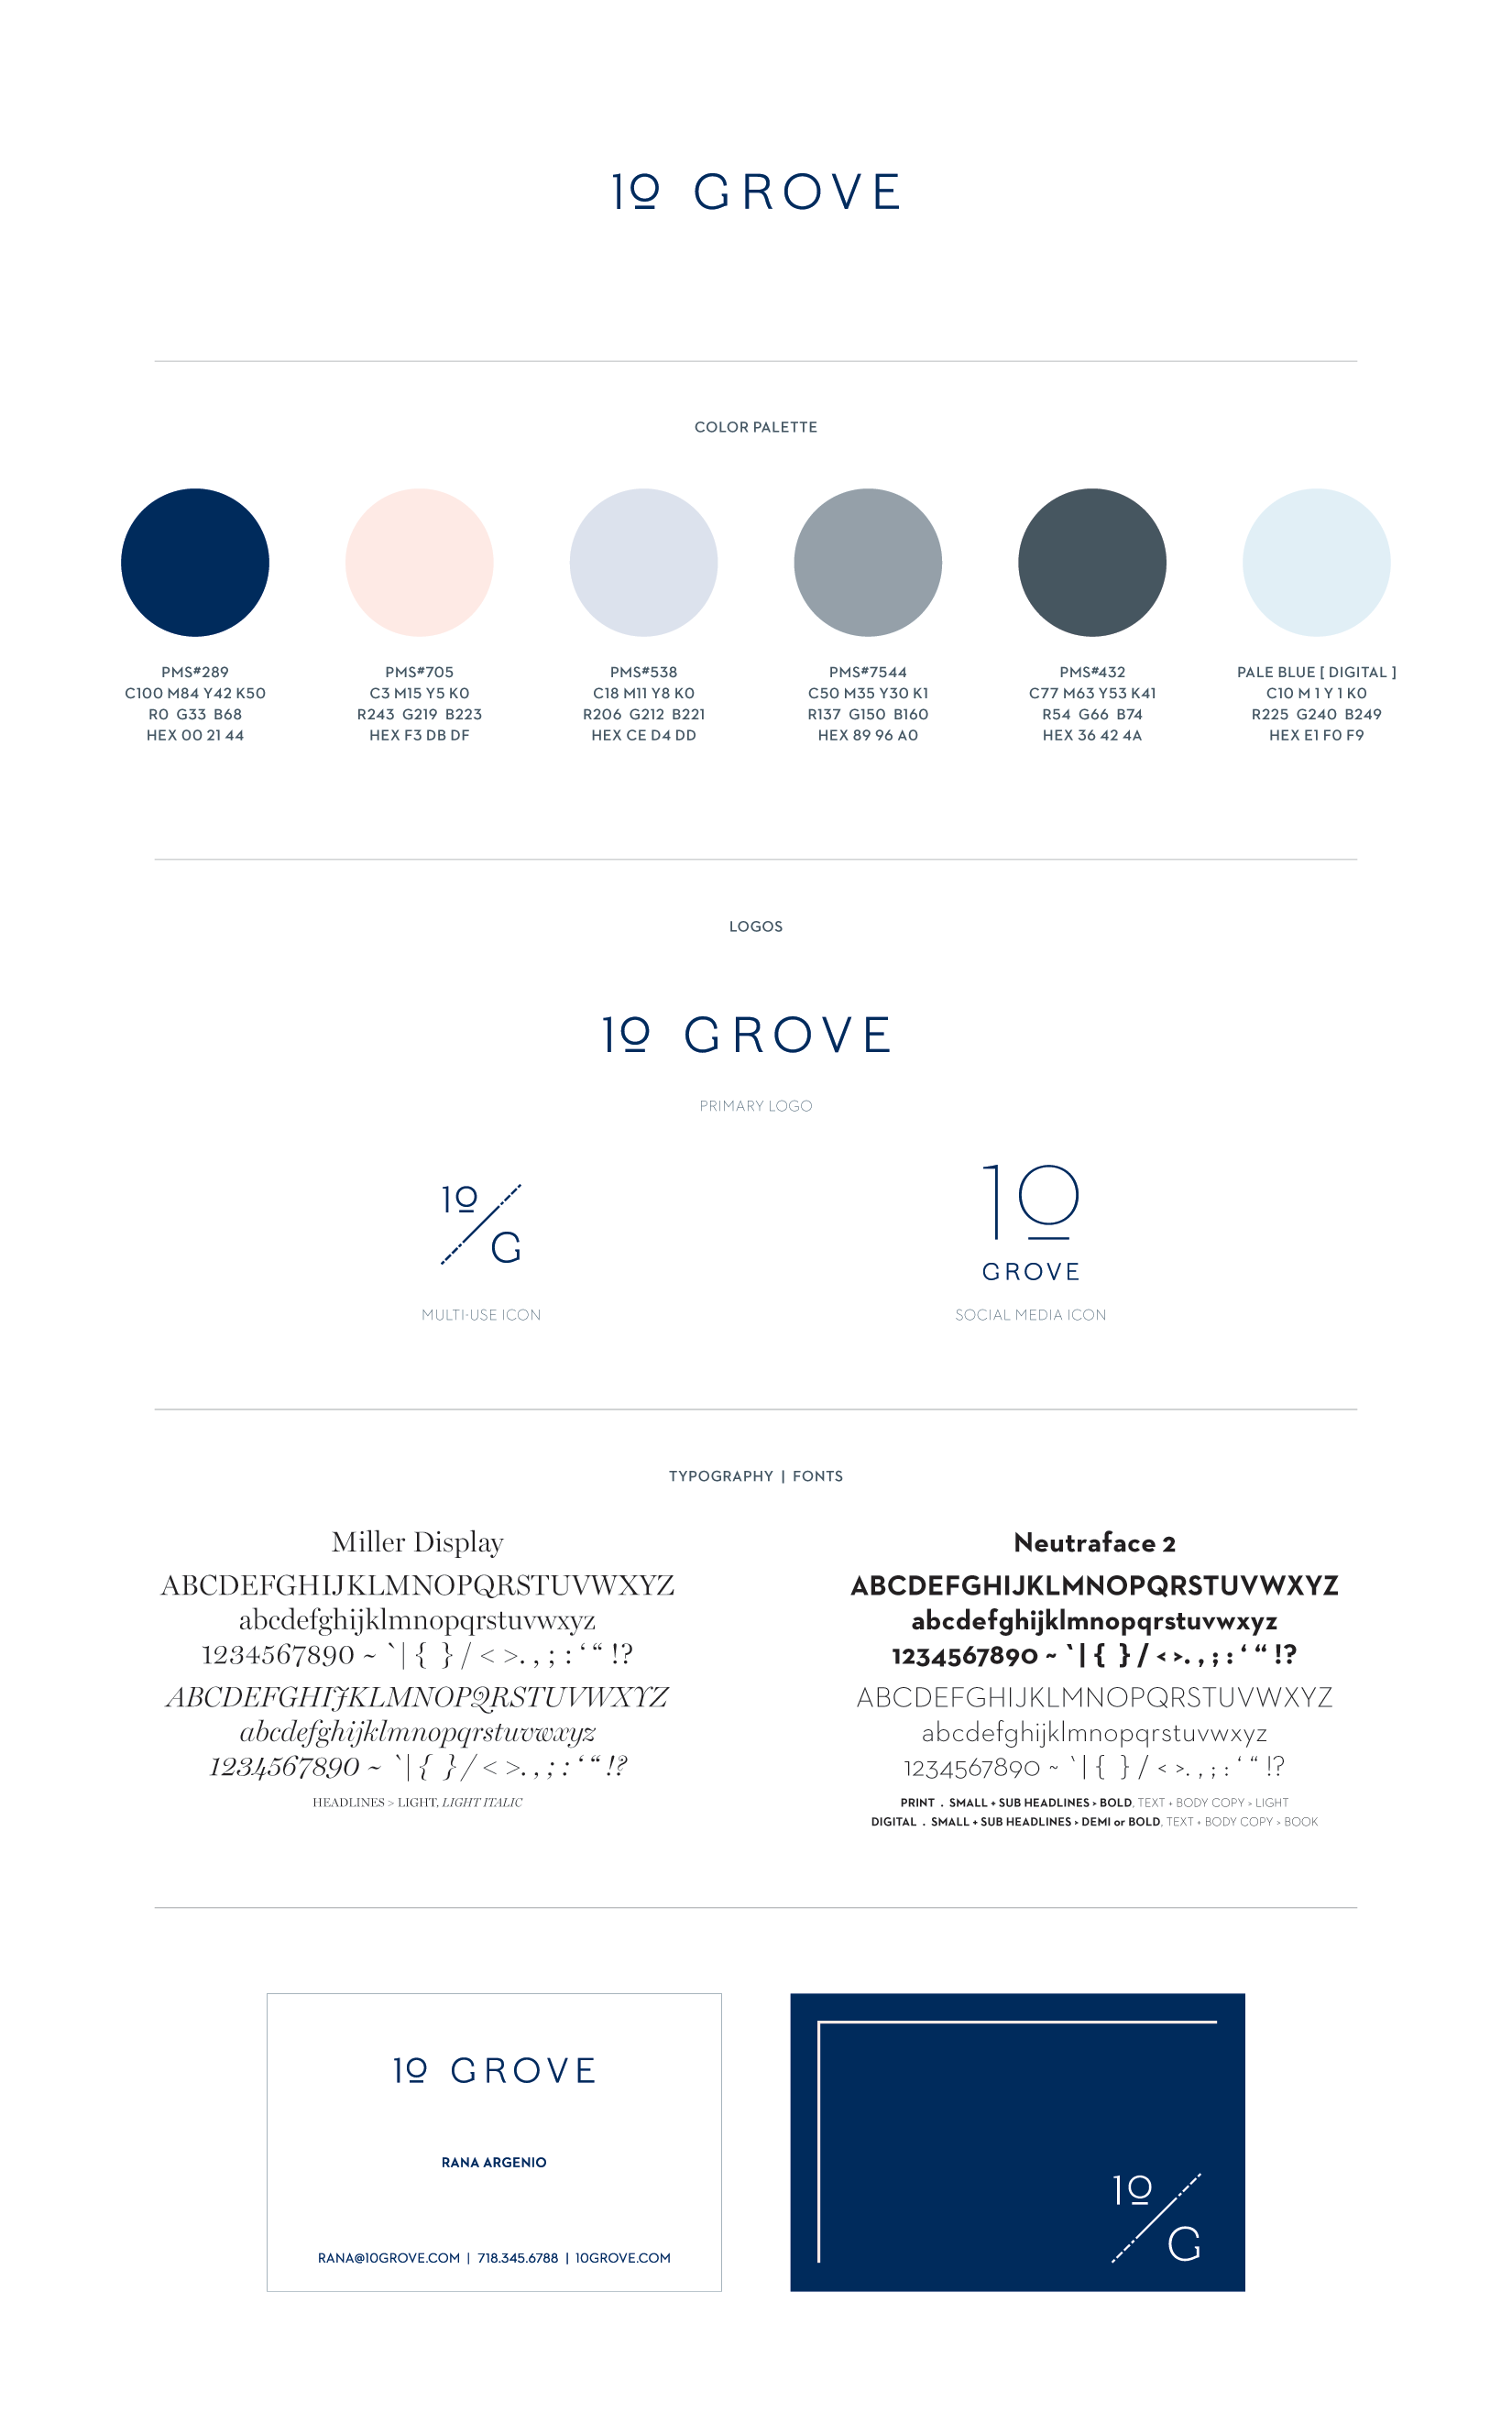 10 Grove_Brand Elements_V2_display.png